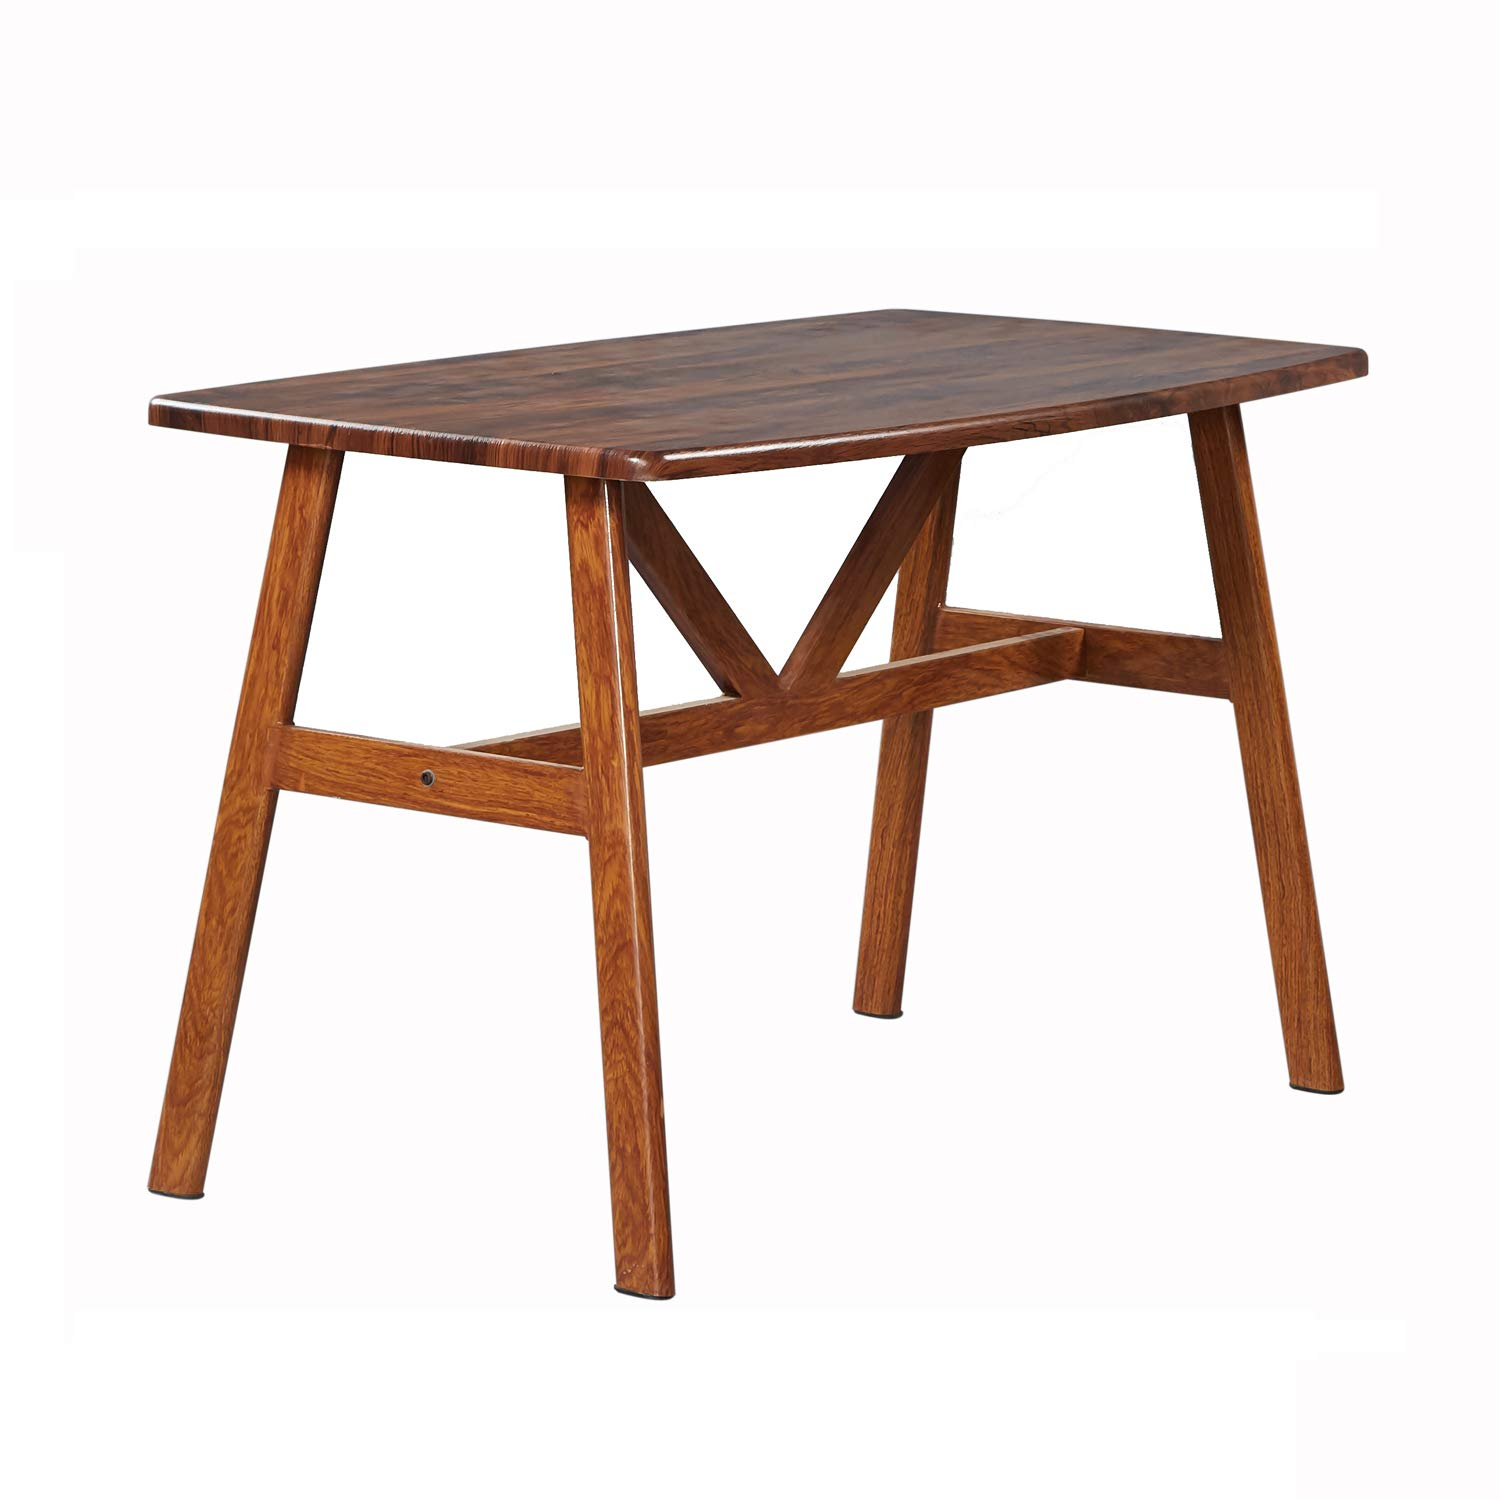 GreenForest Dining Table Modern Wood Top with Metal Legs Dining Room Table 48'' x 28'' Walnut